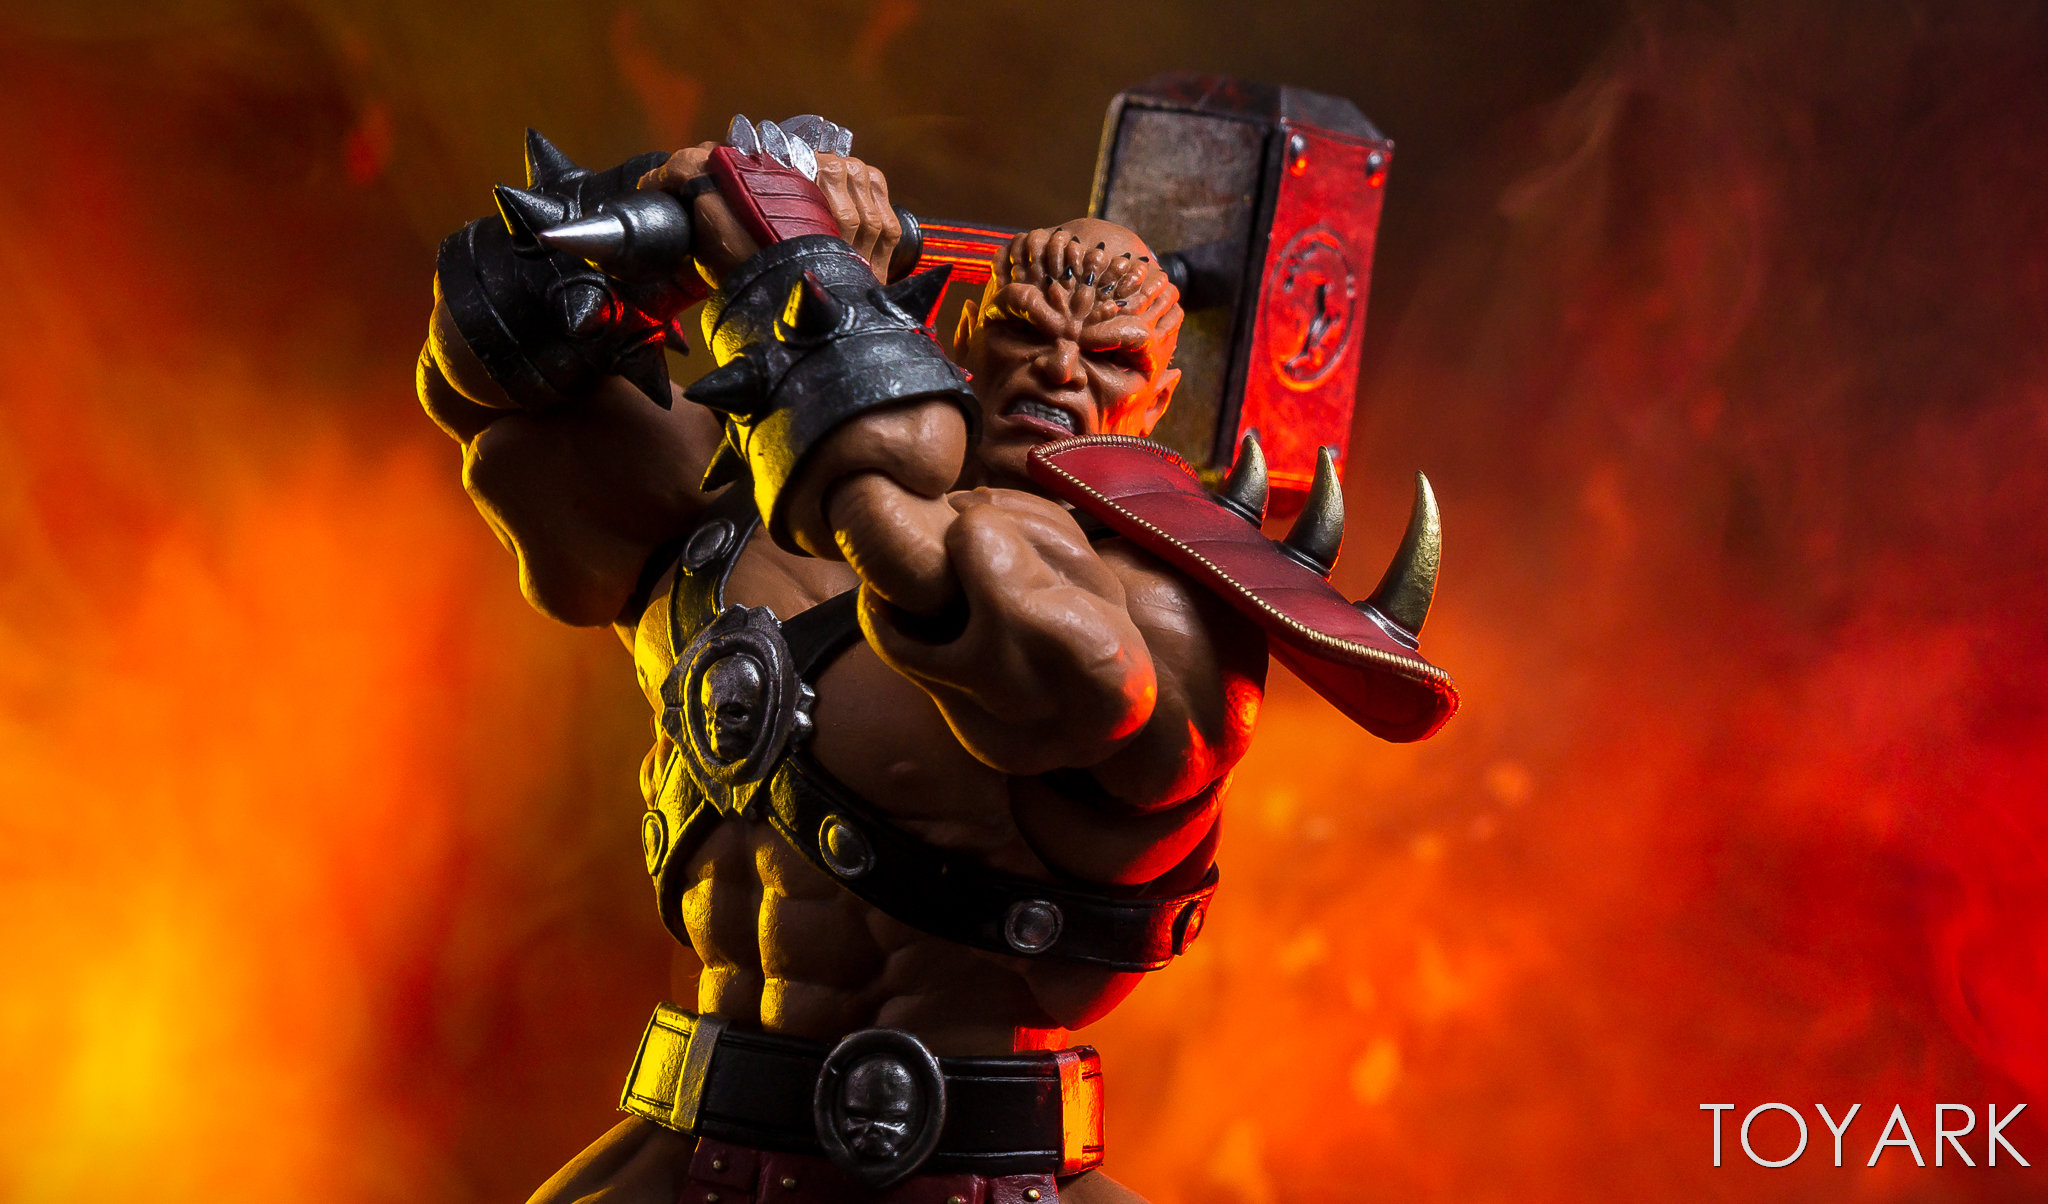 https://news.toyark.com/wp-content/uploads/sites/4/2018/06/Storm-Mortal-Kombat-Shao-Kahn-Figure-051.jpg